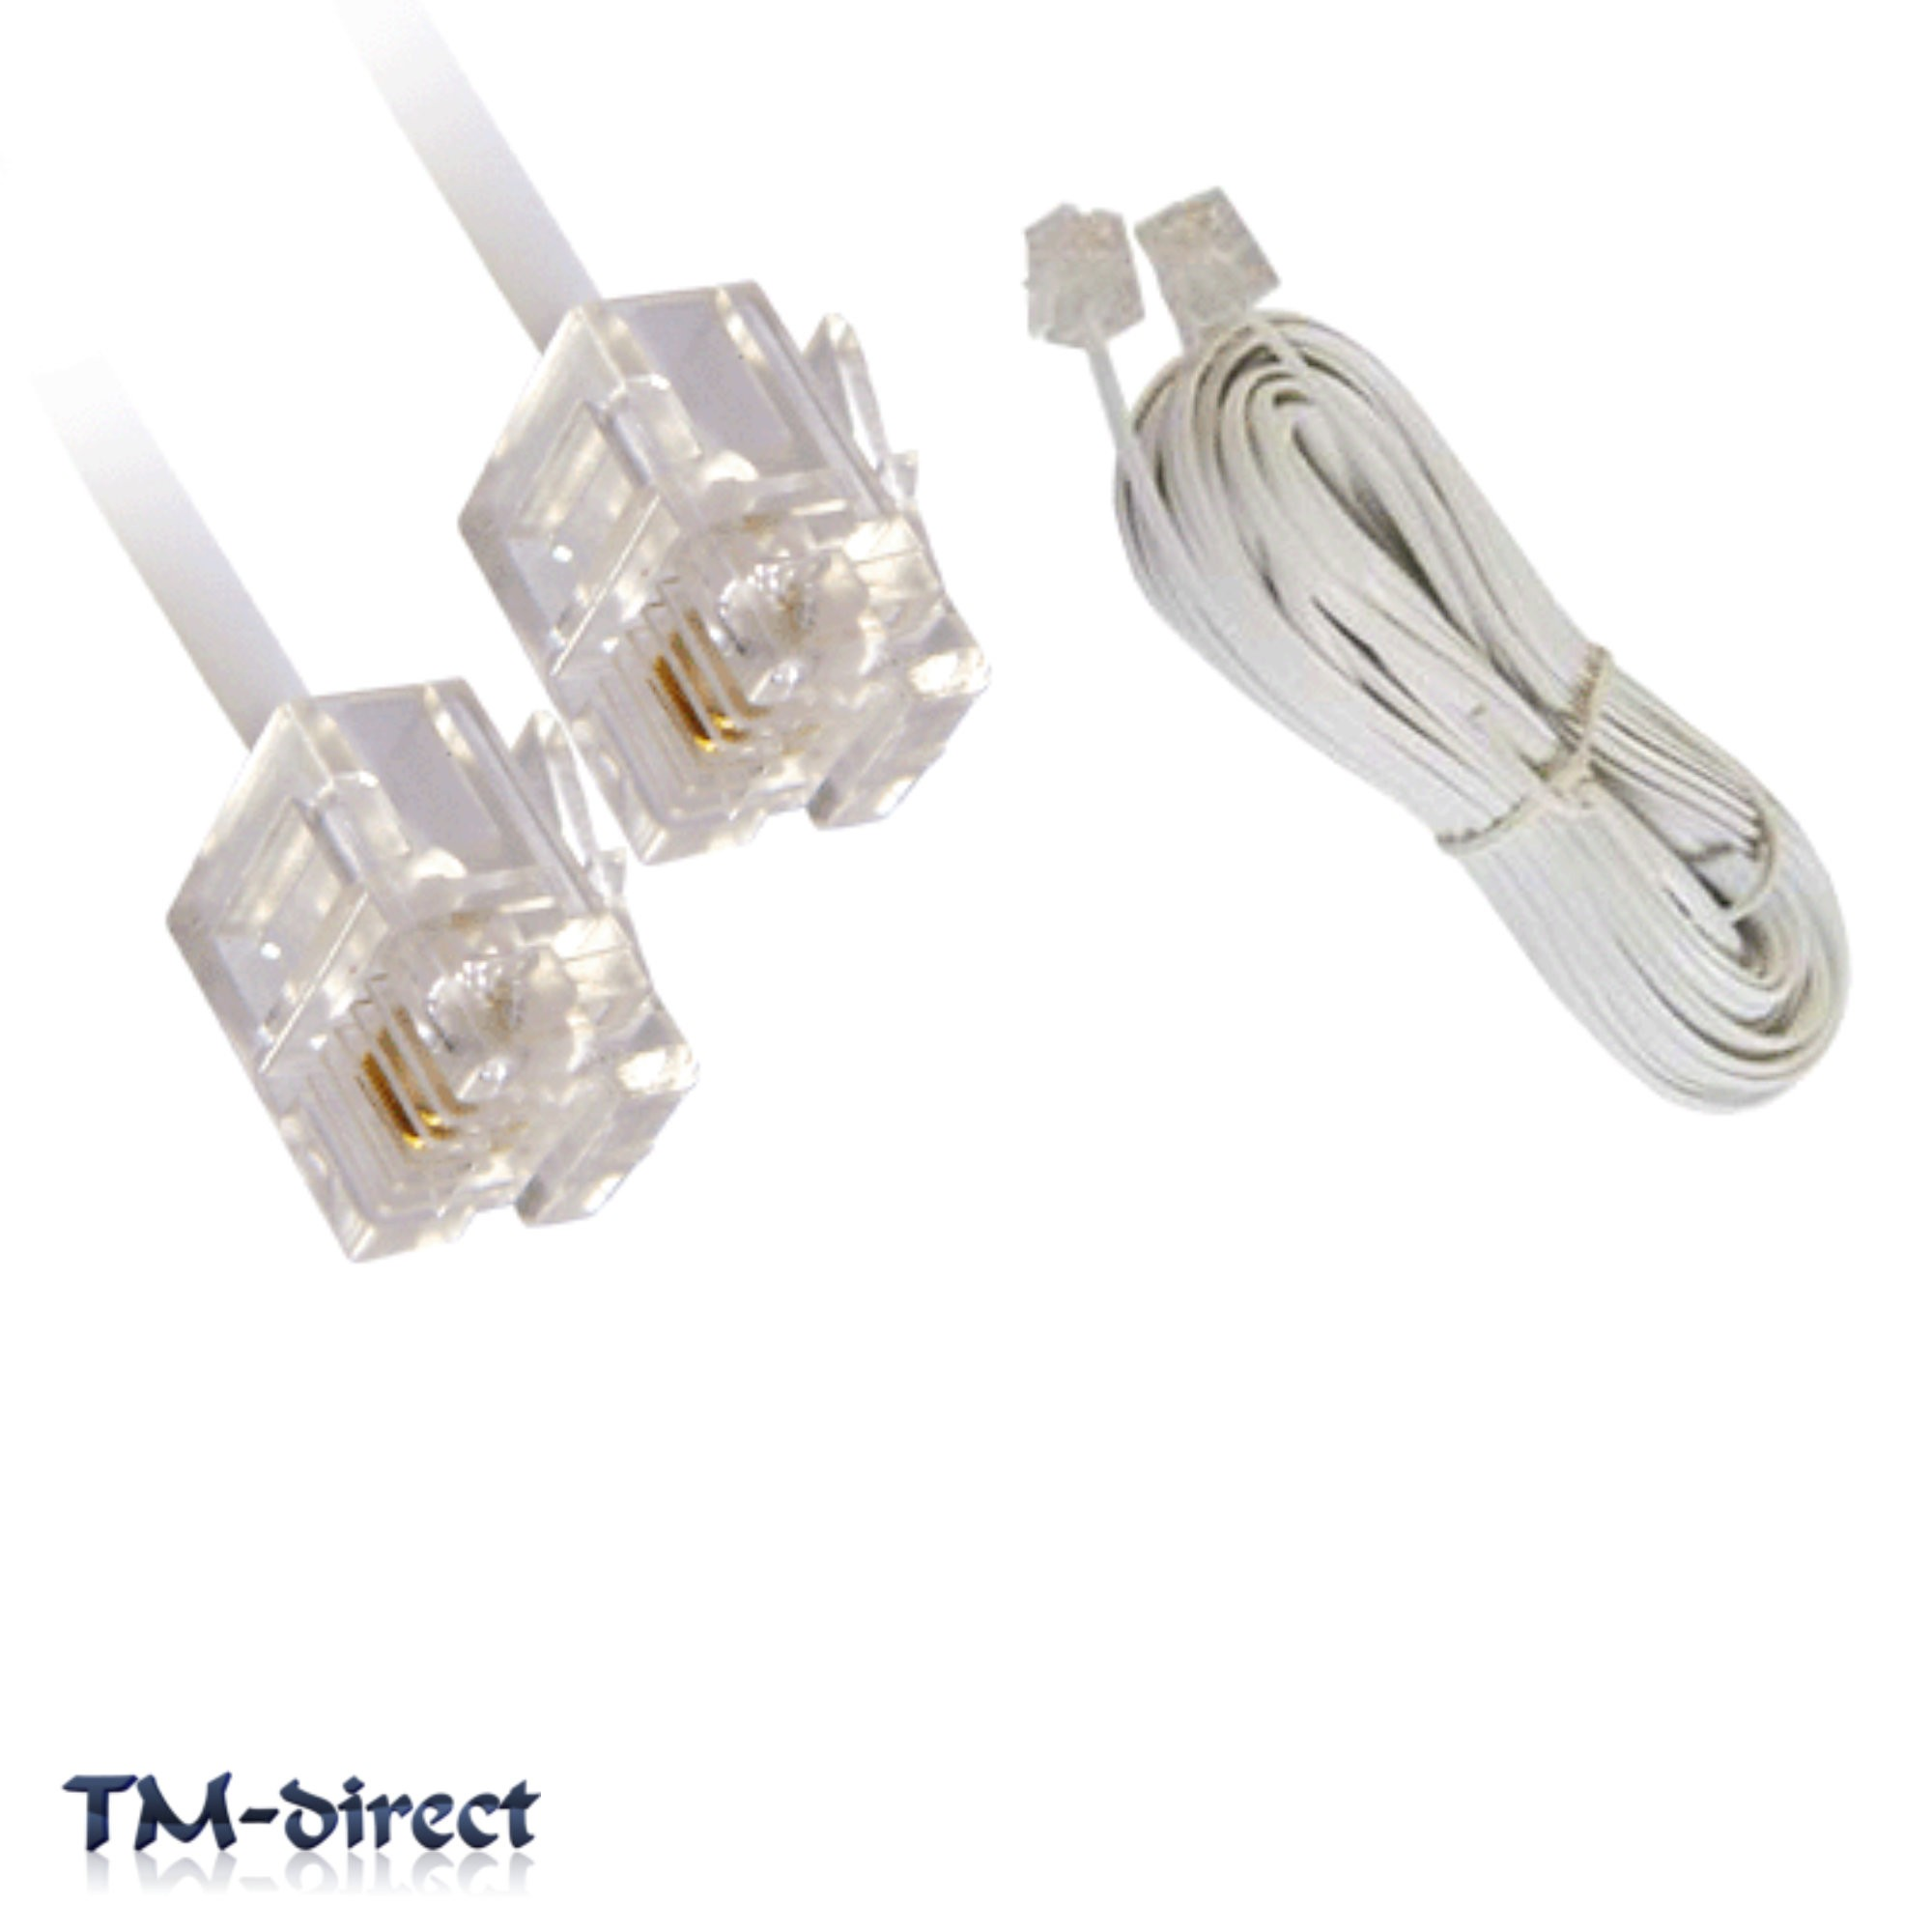 8m Rj11 White Adsl Adsl2 Broadband Internet Modem Router Cable Lead Wiring Diagram For 2m High Speed